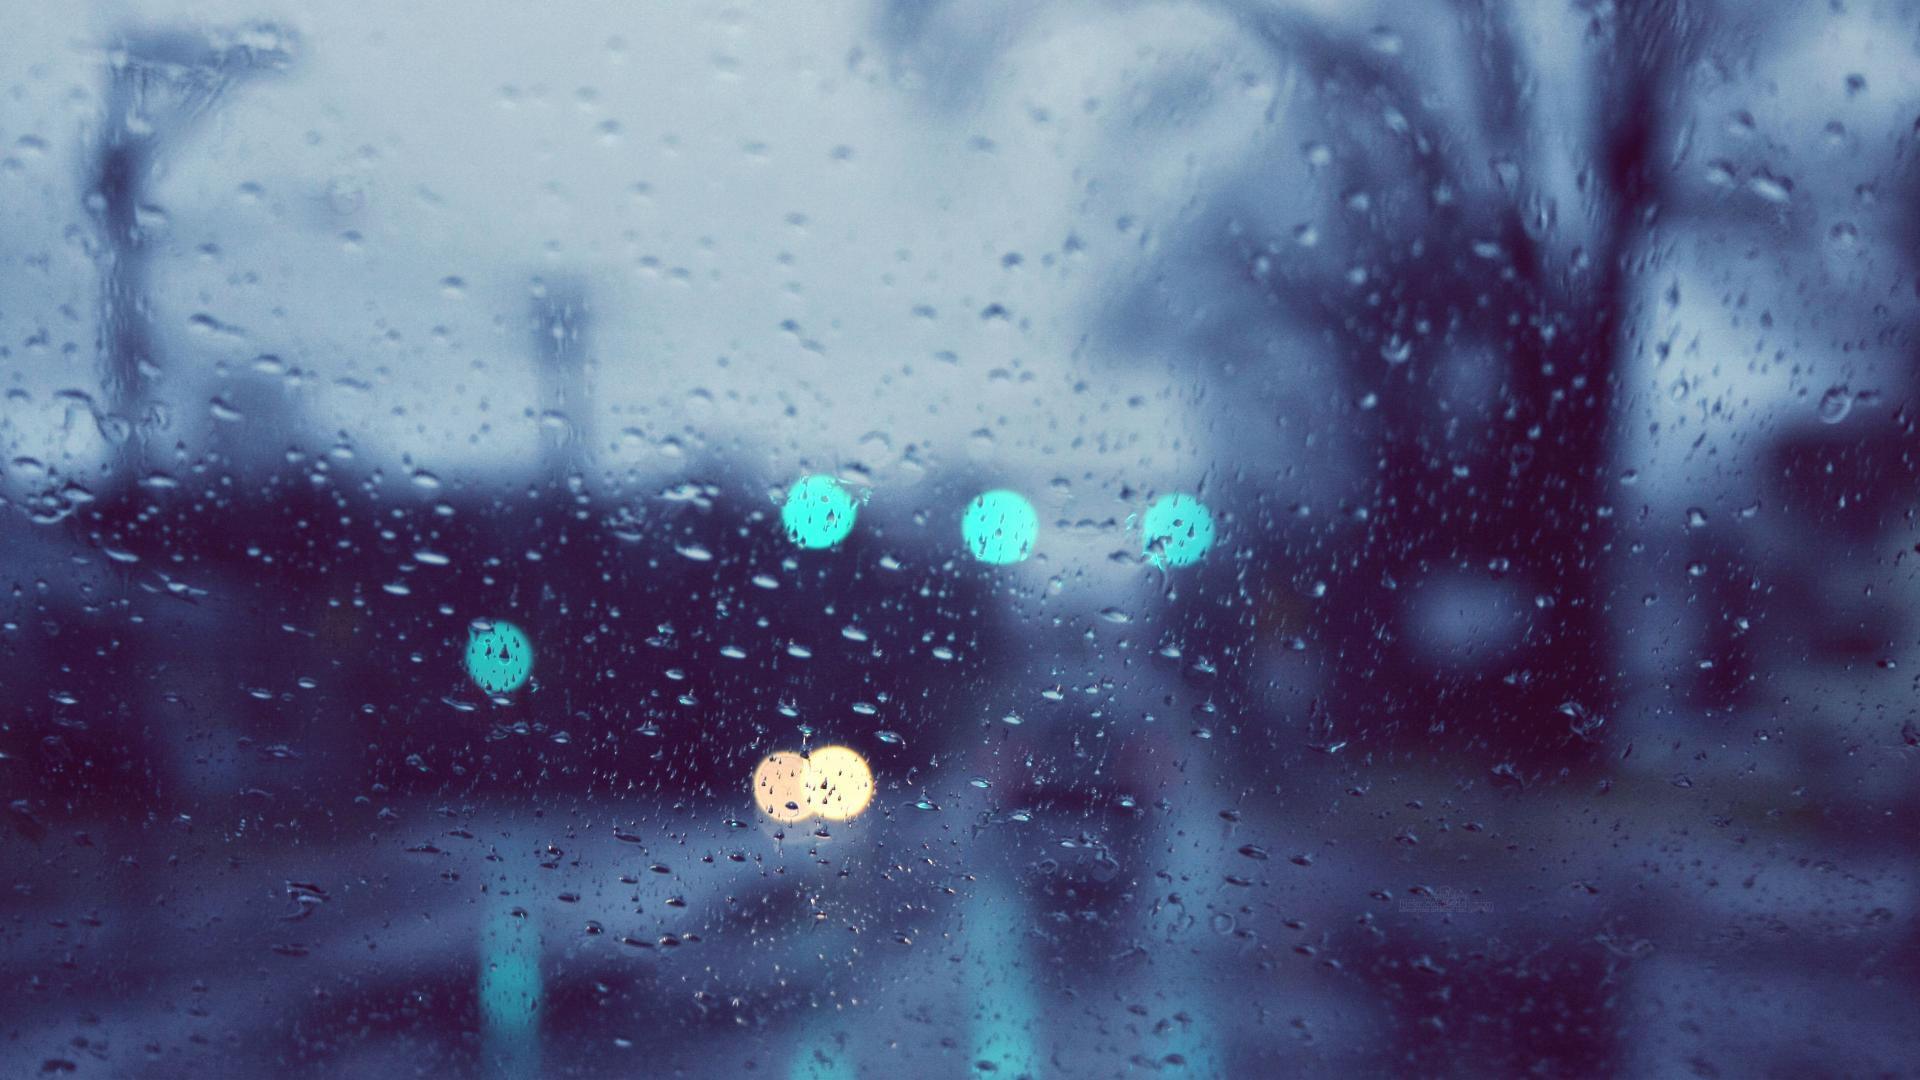 Rain Wallpaper 1920x1080 Images amp Pictures   Becuo 1920x1080